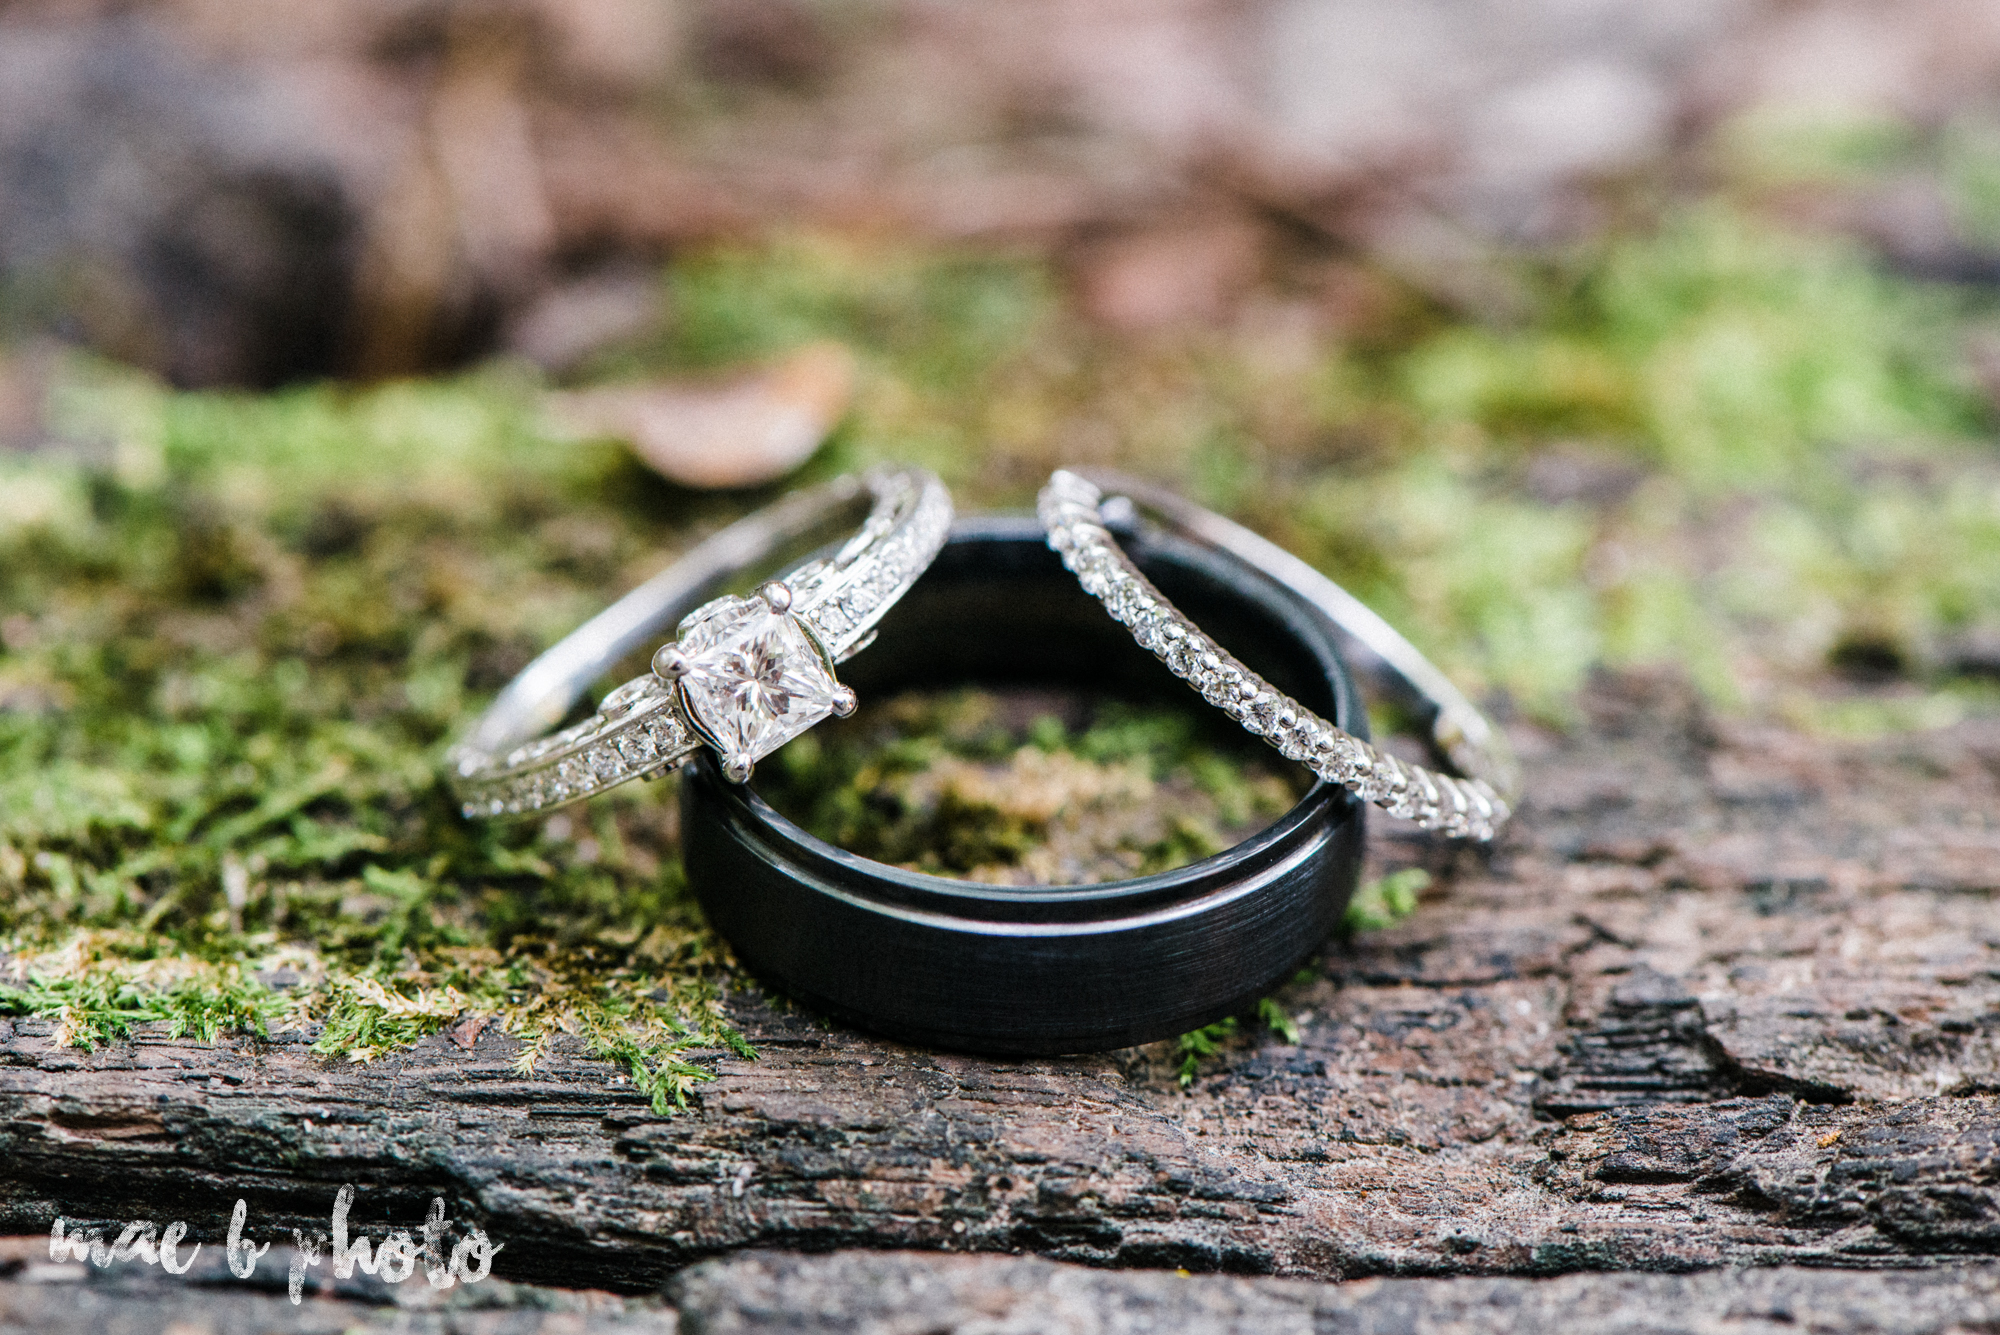 bobbi and pat's intimate fall cabin elopement in hocking hills old man's cave and rock house in logan ohio photographed by youngstown wedding photographer mae b photo-22.jpg